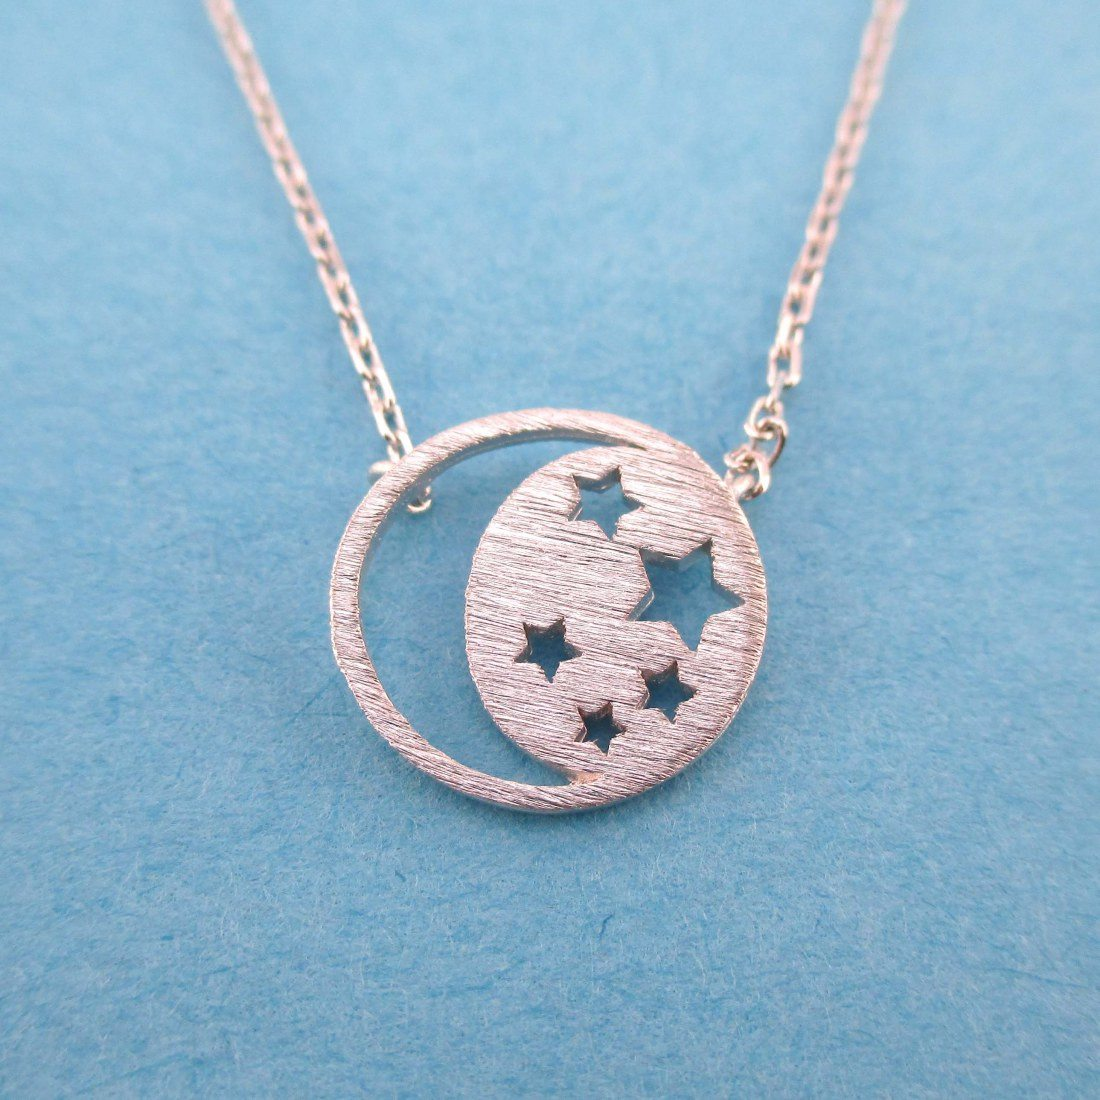 Celestial Crescent Moon and Stars Cut Out Pendant Necklace in Silver